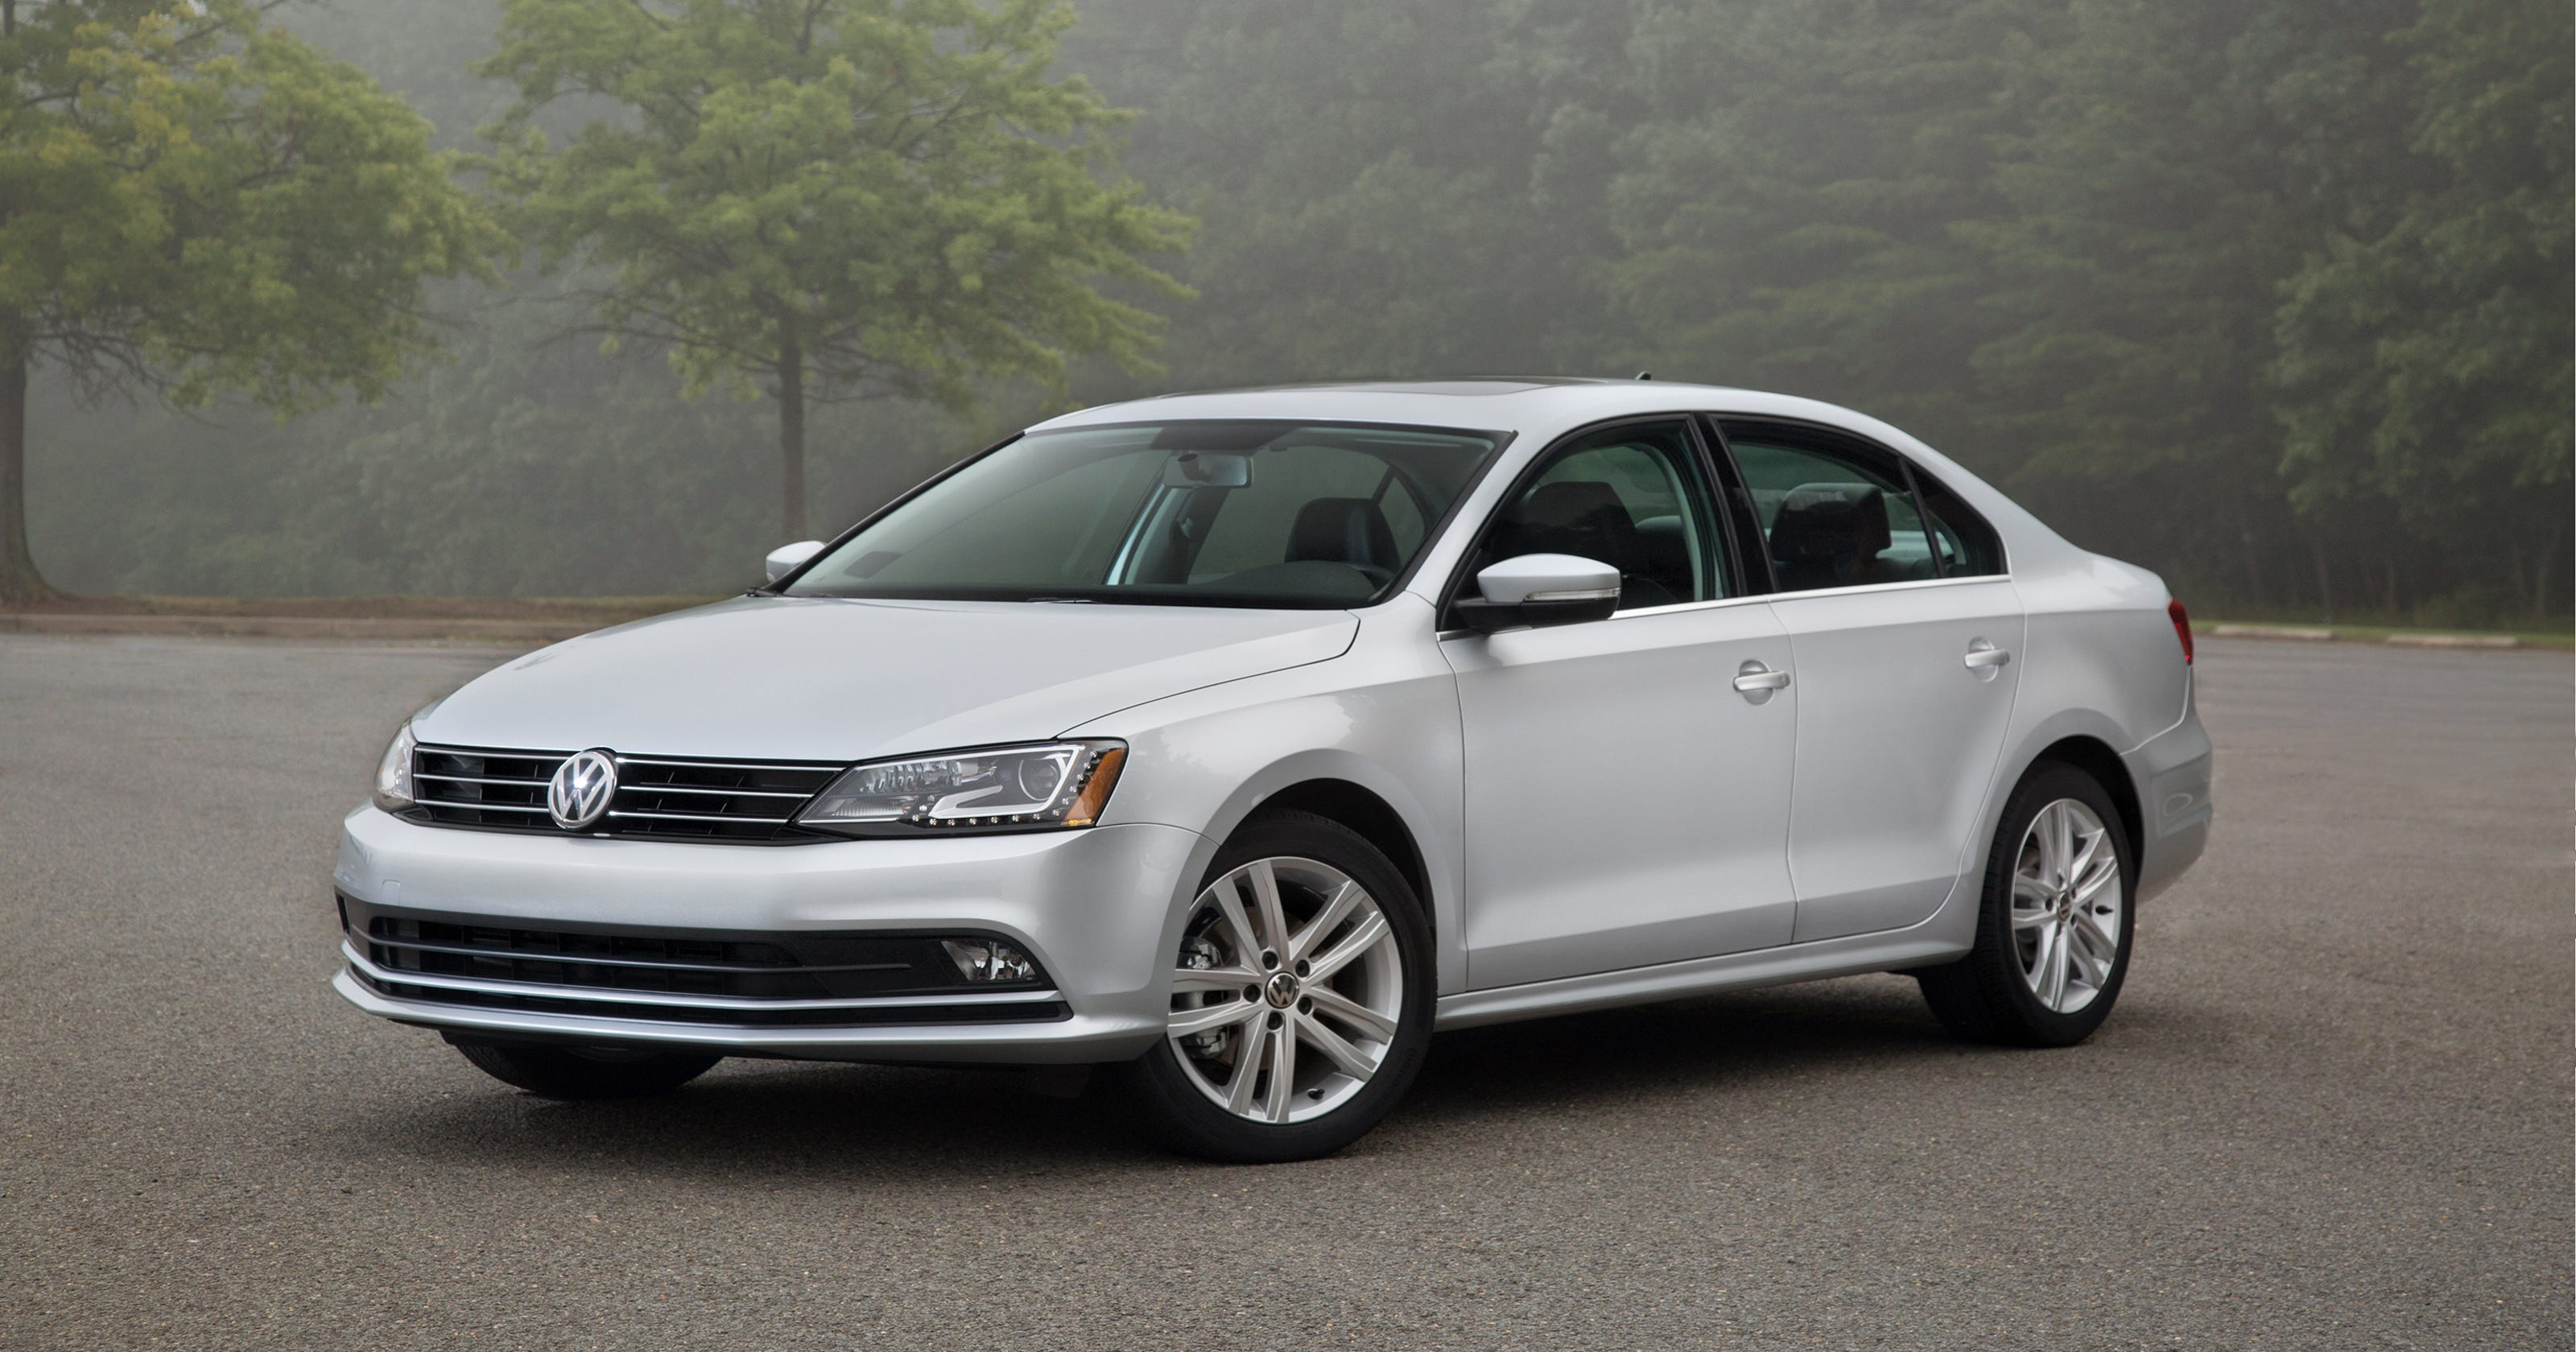 2015 VW Jetta, new where you can't see